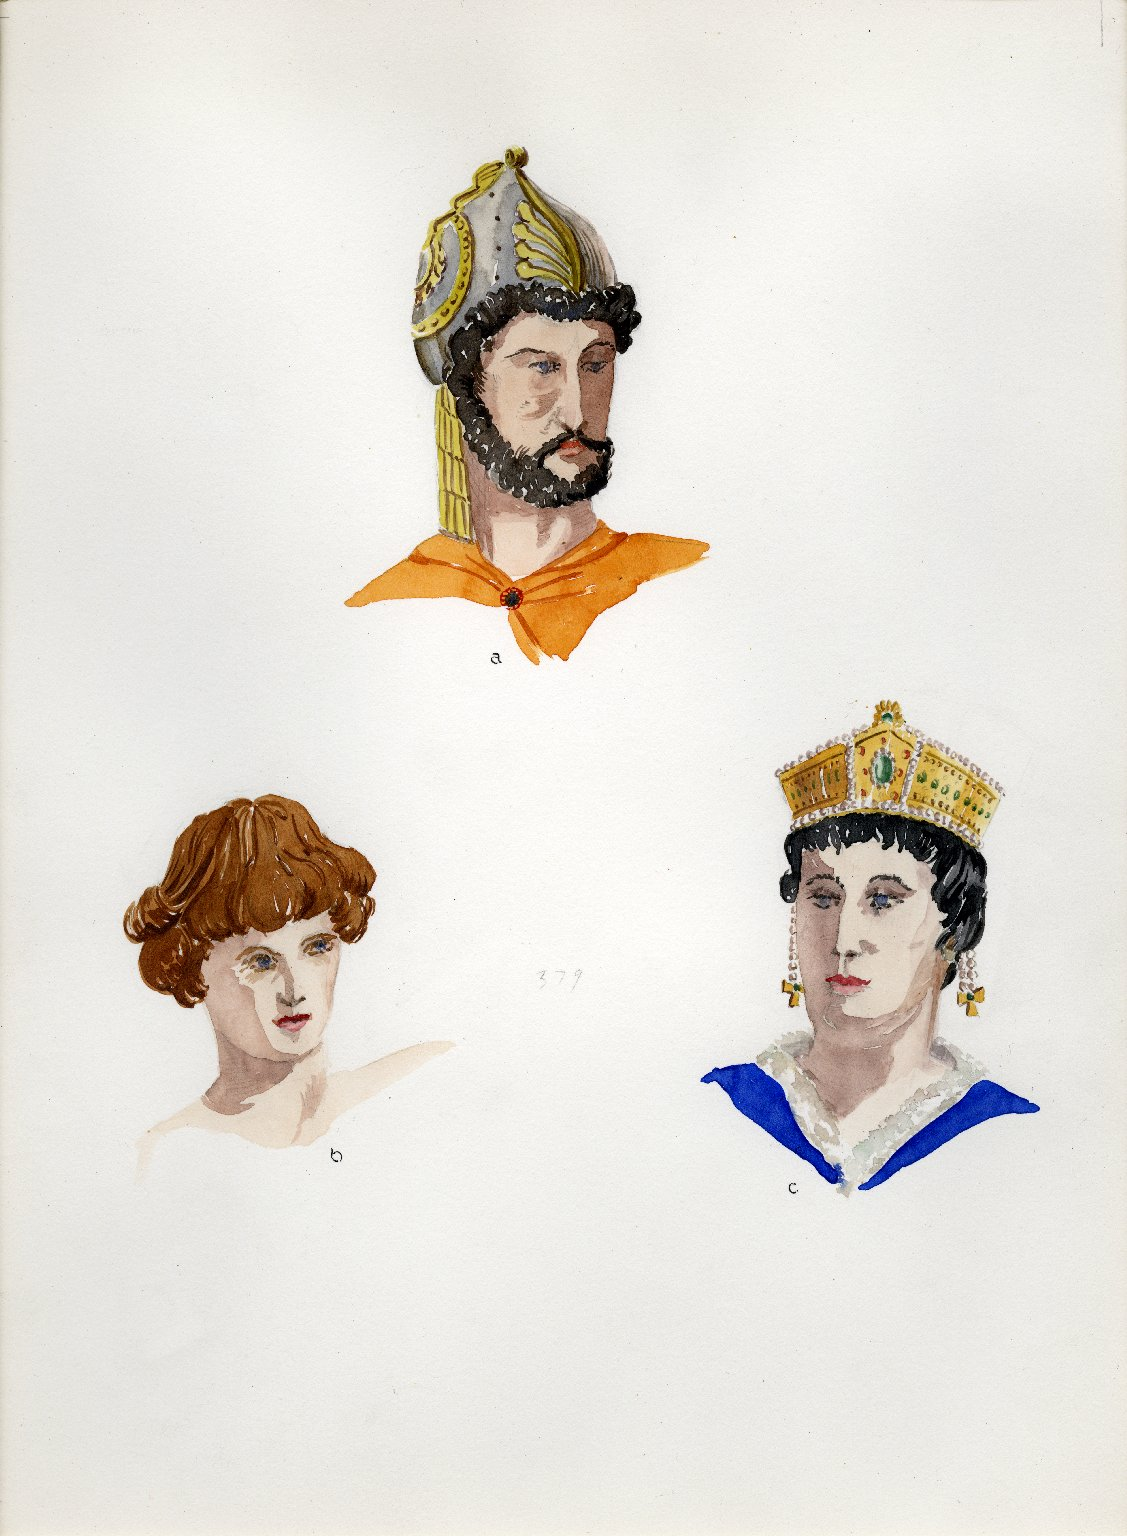 Plate XVII: Dark and Early Middle Ages helmet, coiffure, headdress